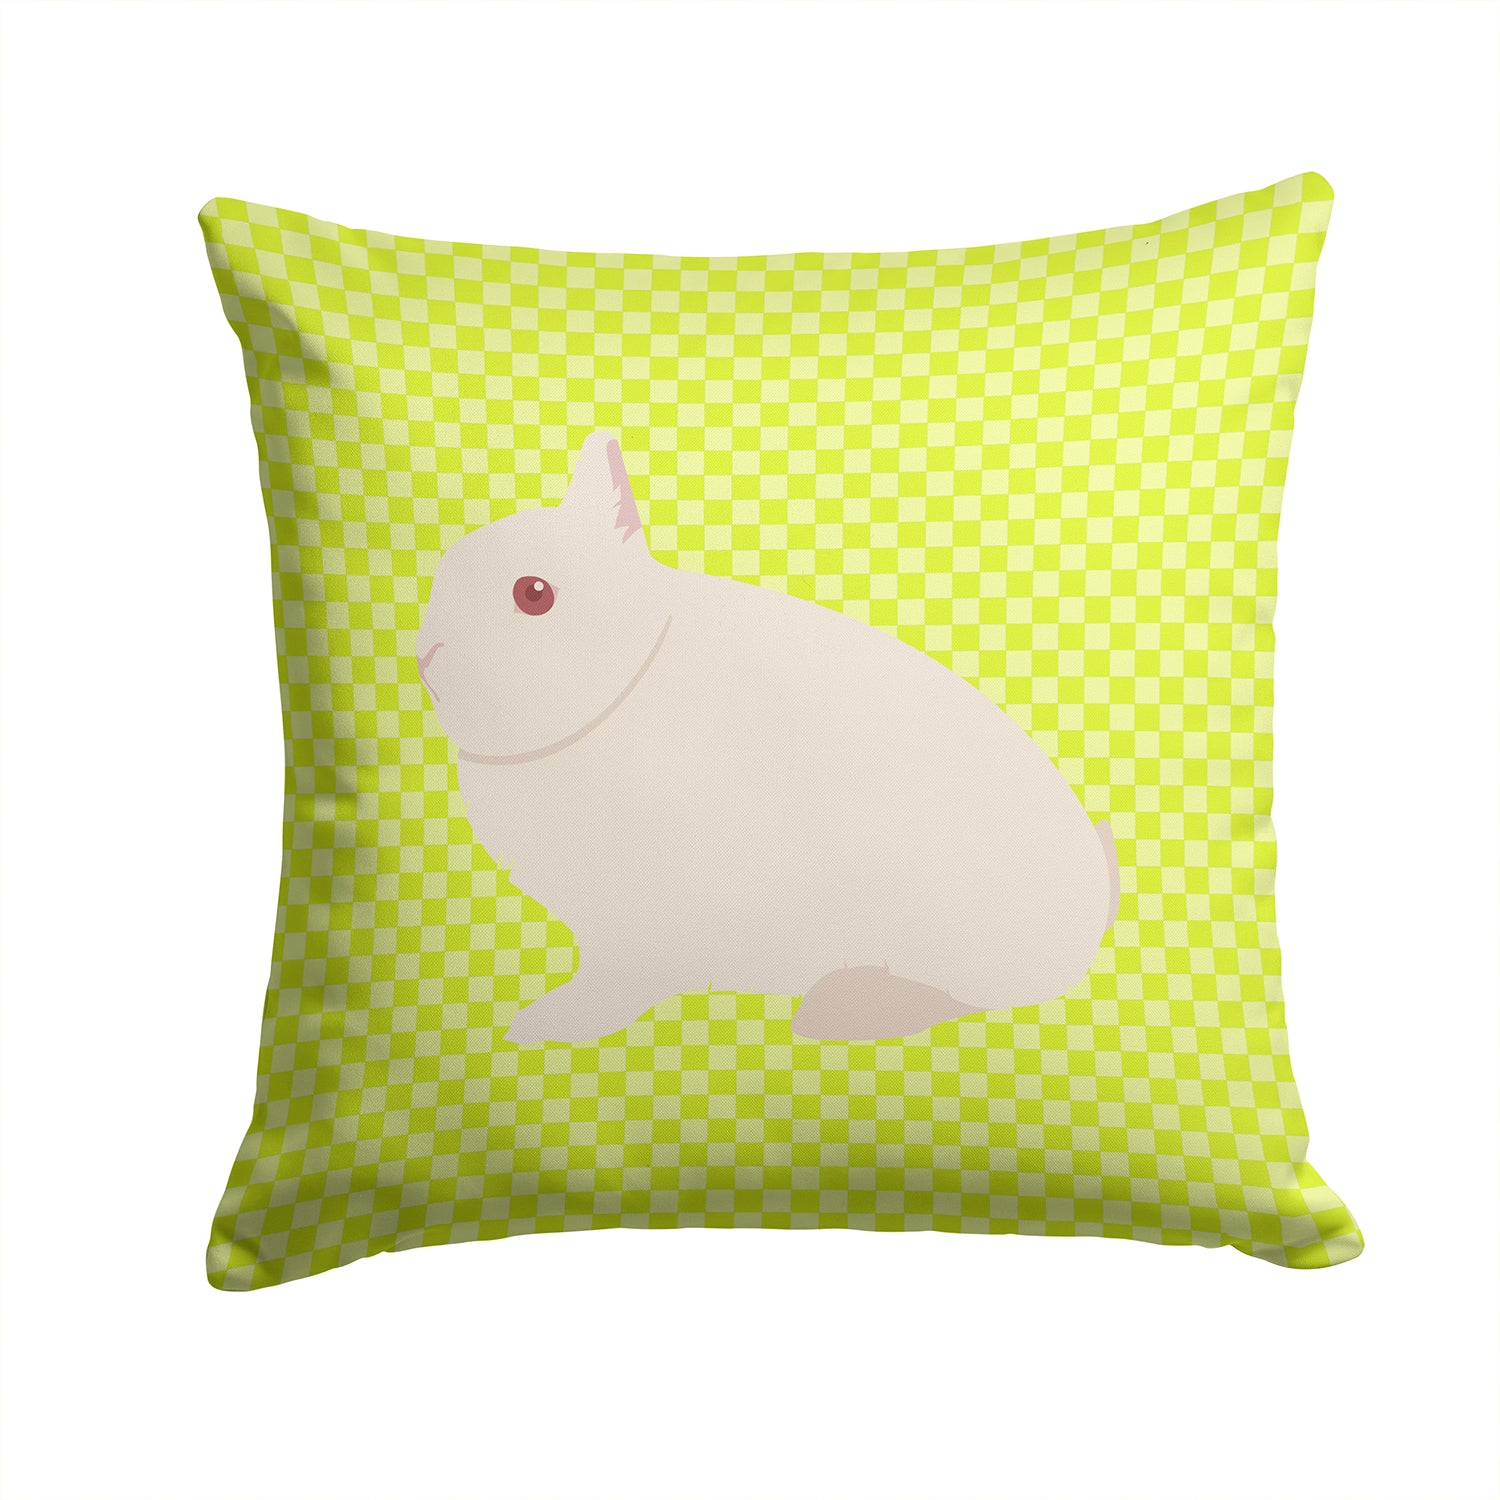 Hermelin Rabbit Green Fabric Decorative Pillow BB7790PW1414 by Caroline's Treasures